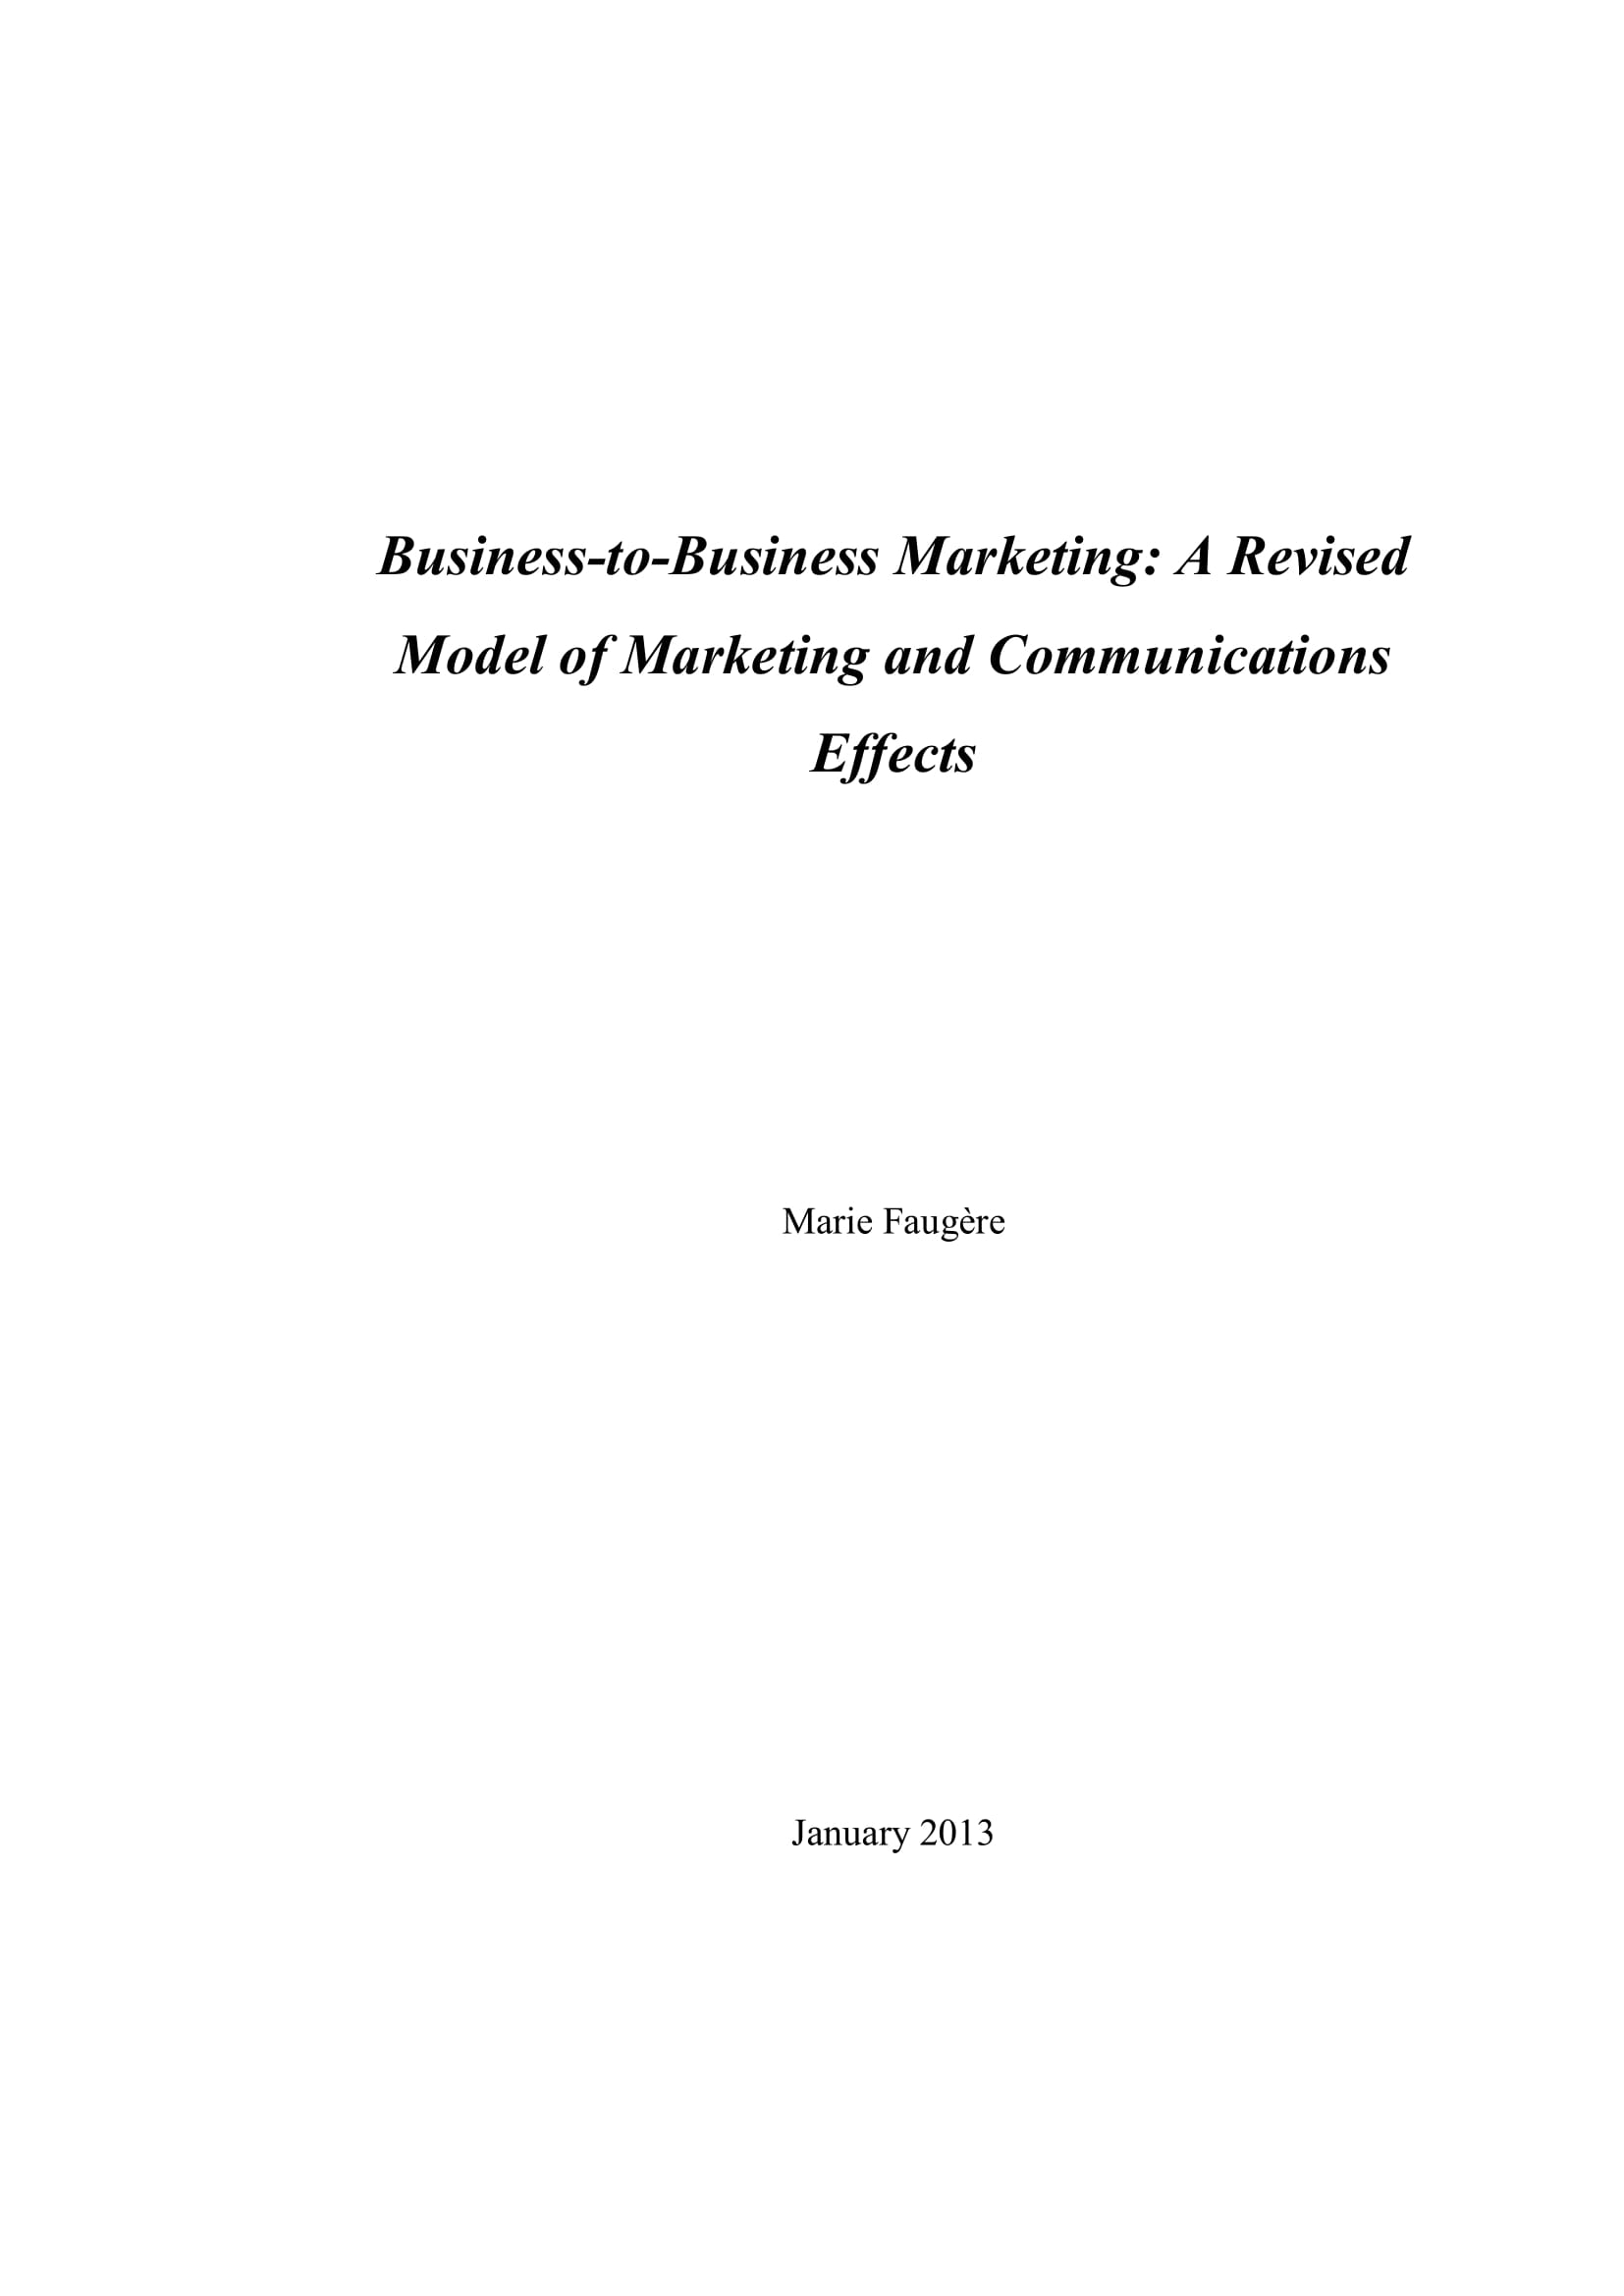 b2b marketing revised model of marketing and communications effects example 001